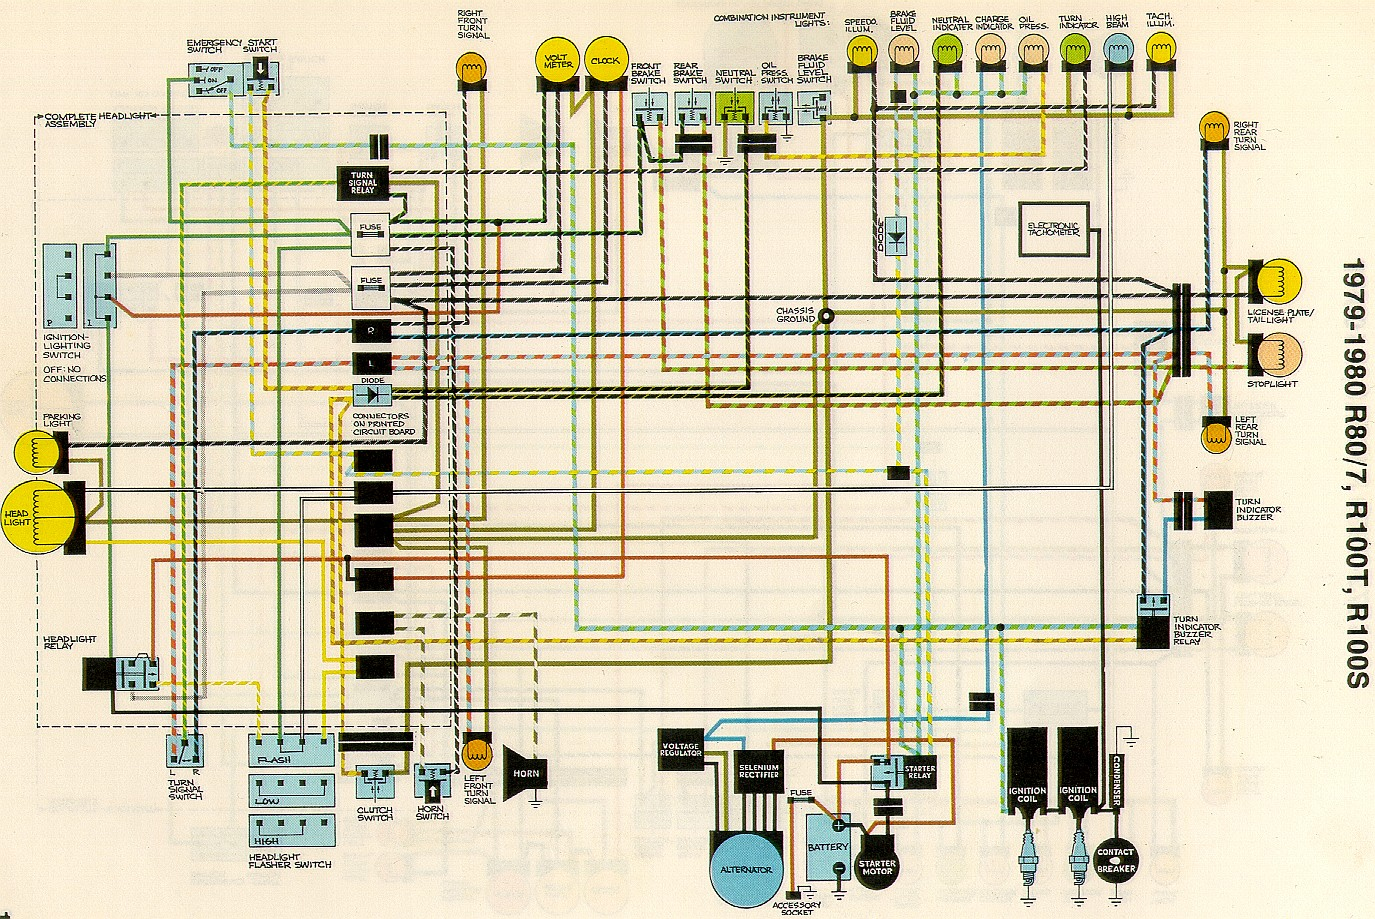 79 5 united articles wiring diagrams bmw r100rs gauge wiring diagram at sewacar.co